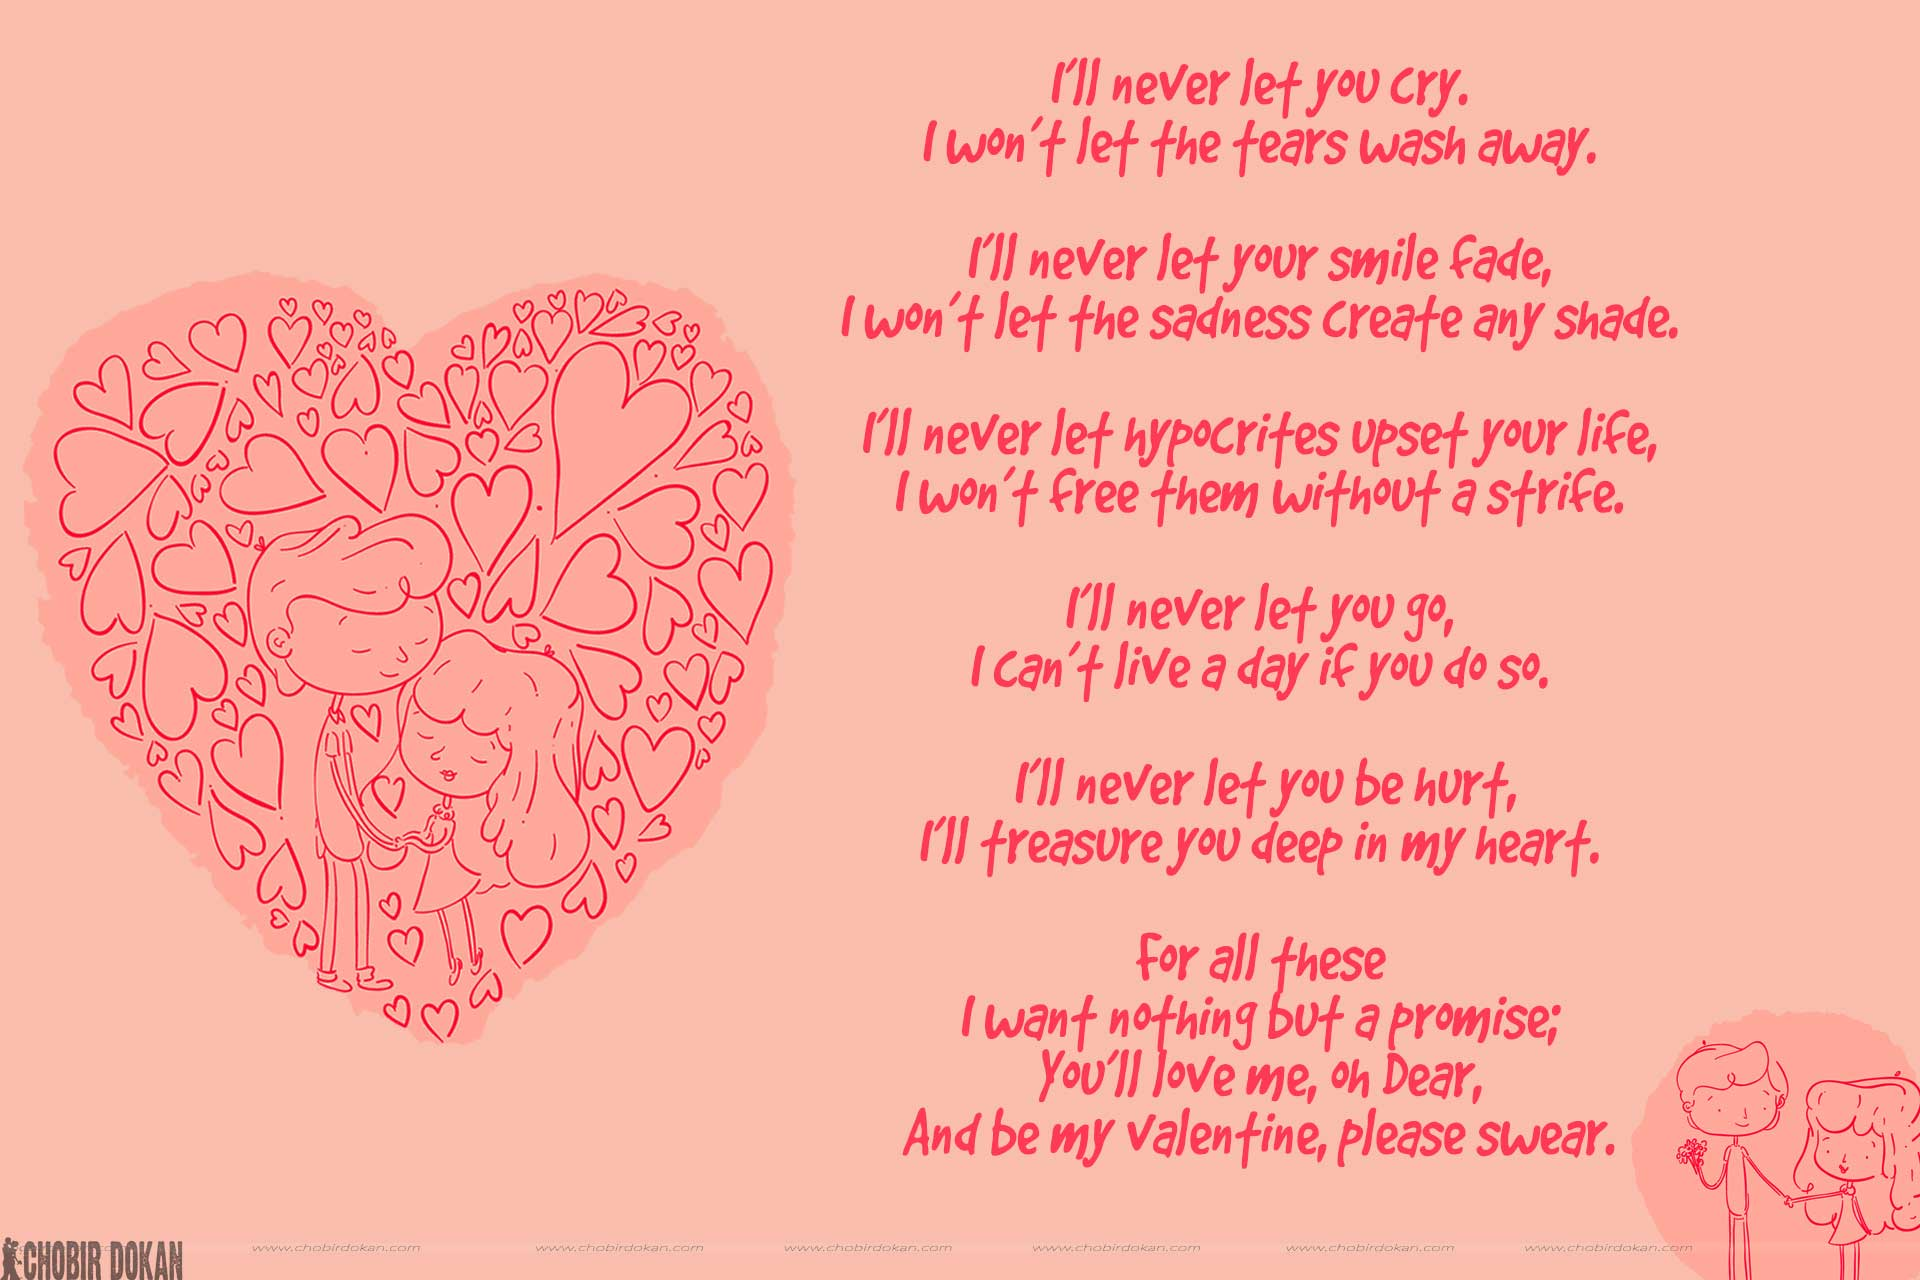 Will You Be My Valentine Poems For Himher With Images February 2016